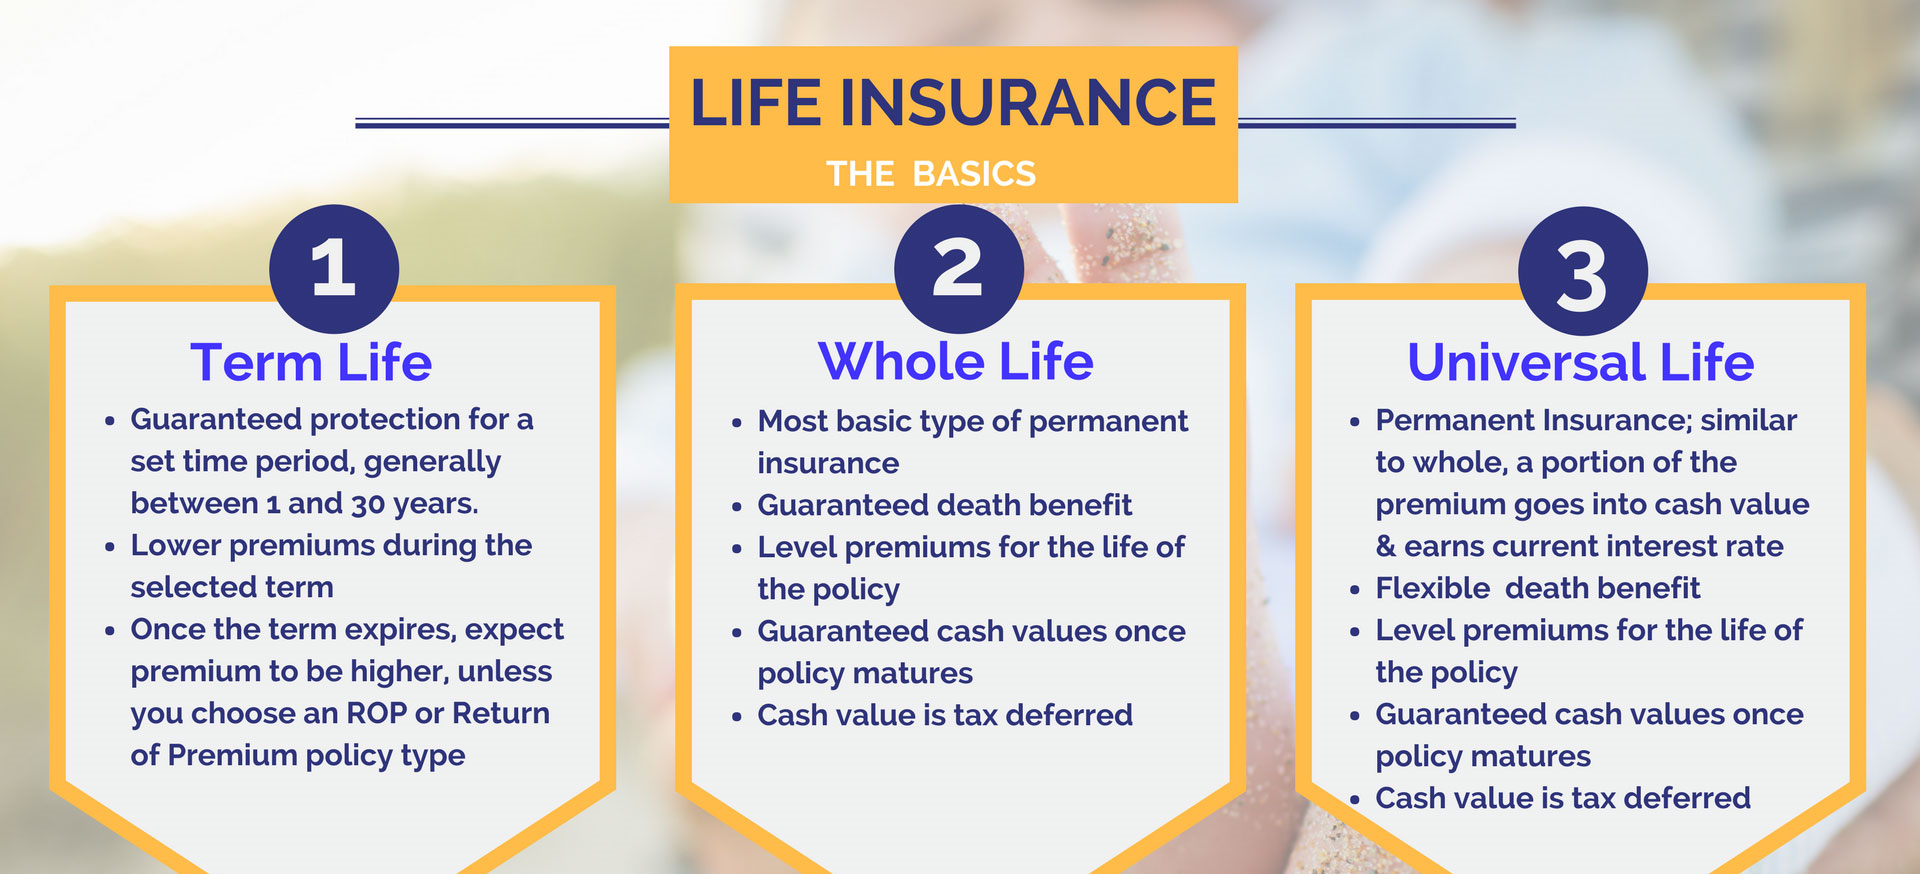 Life-Insurance-the-basics.png